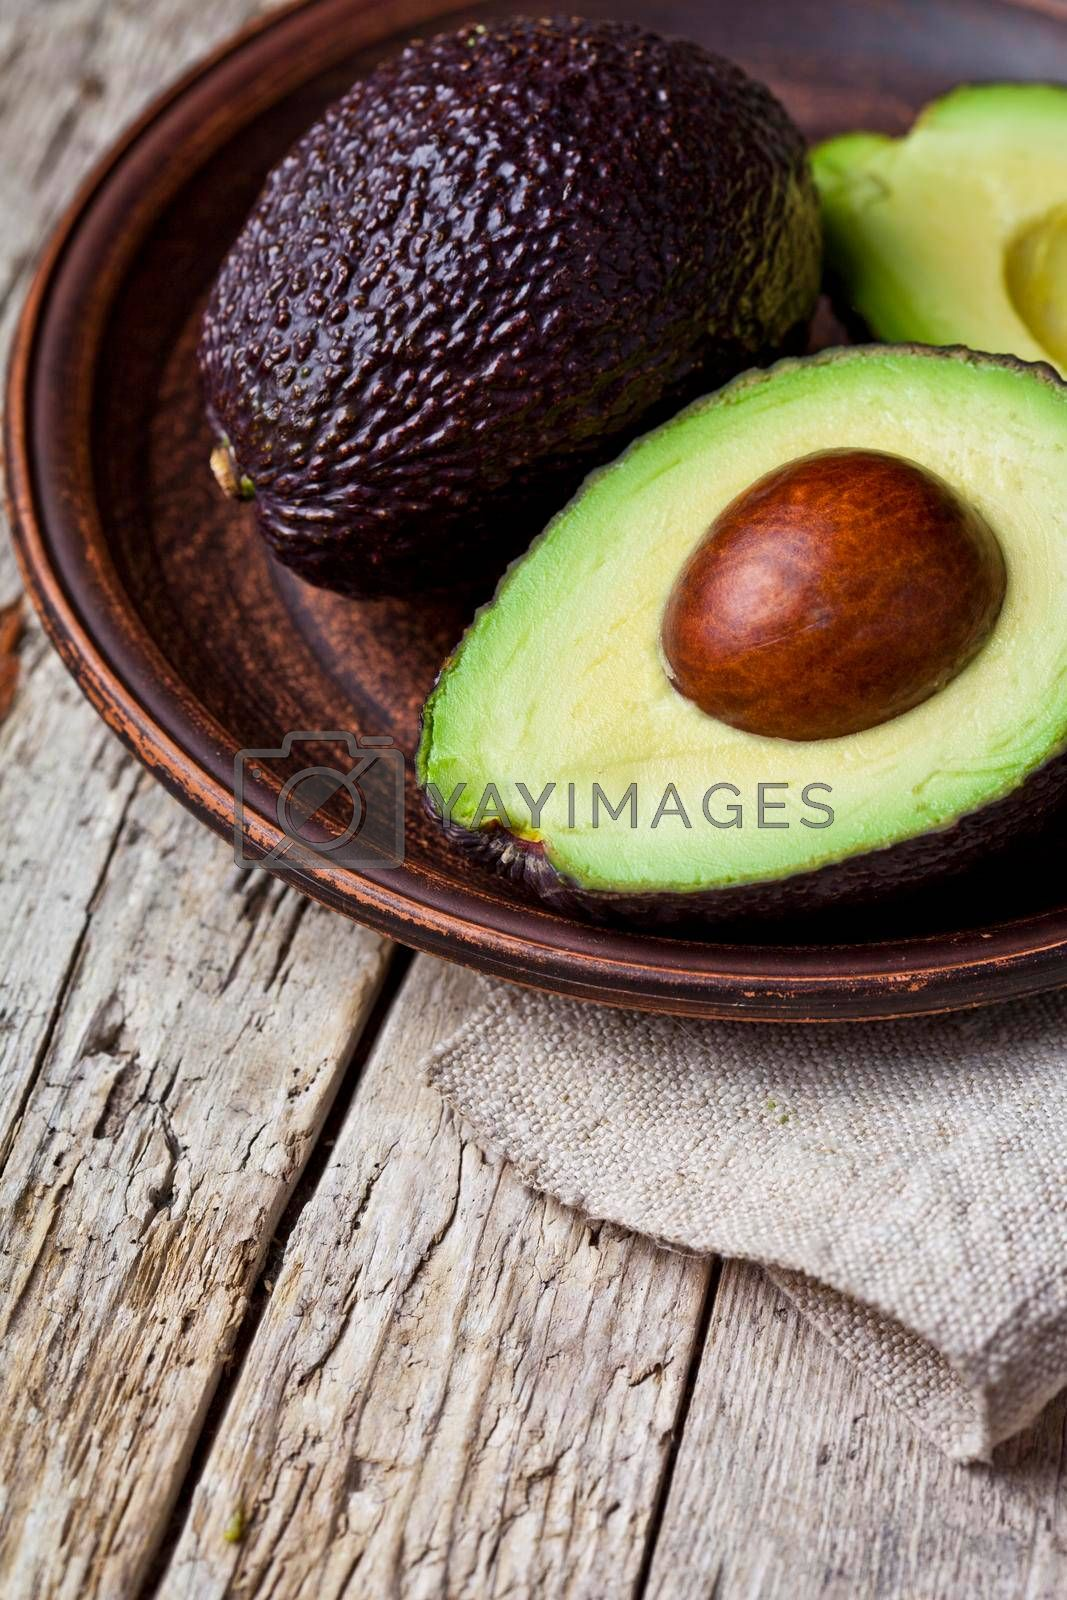 Fresh organic avocado on ceramic plate and linen napkin on rustic wooden table background. Healthy food concept with copy space.